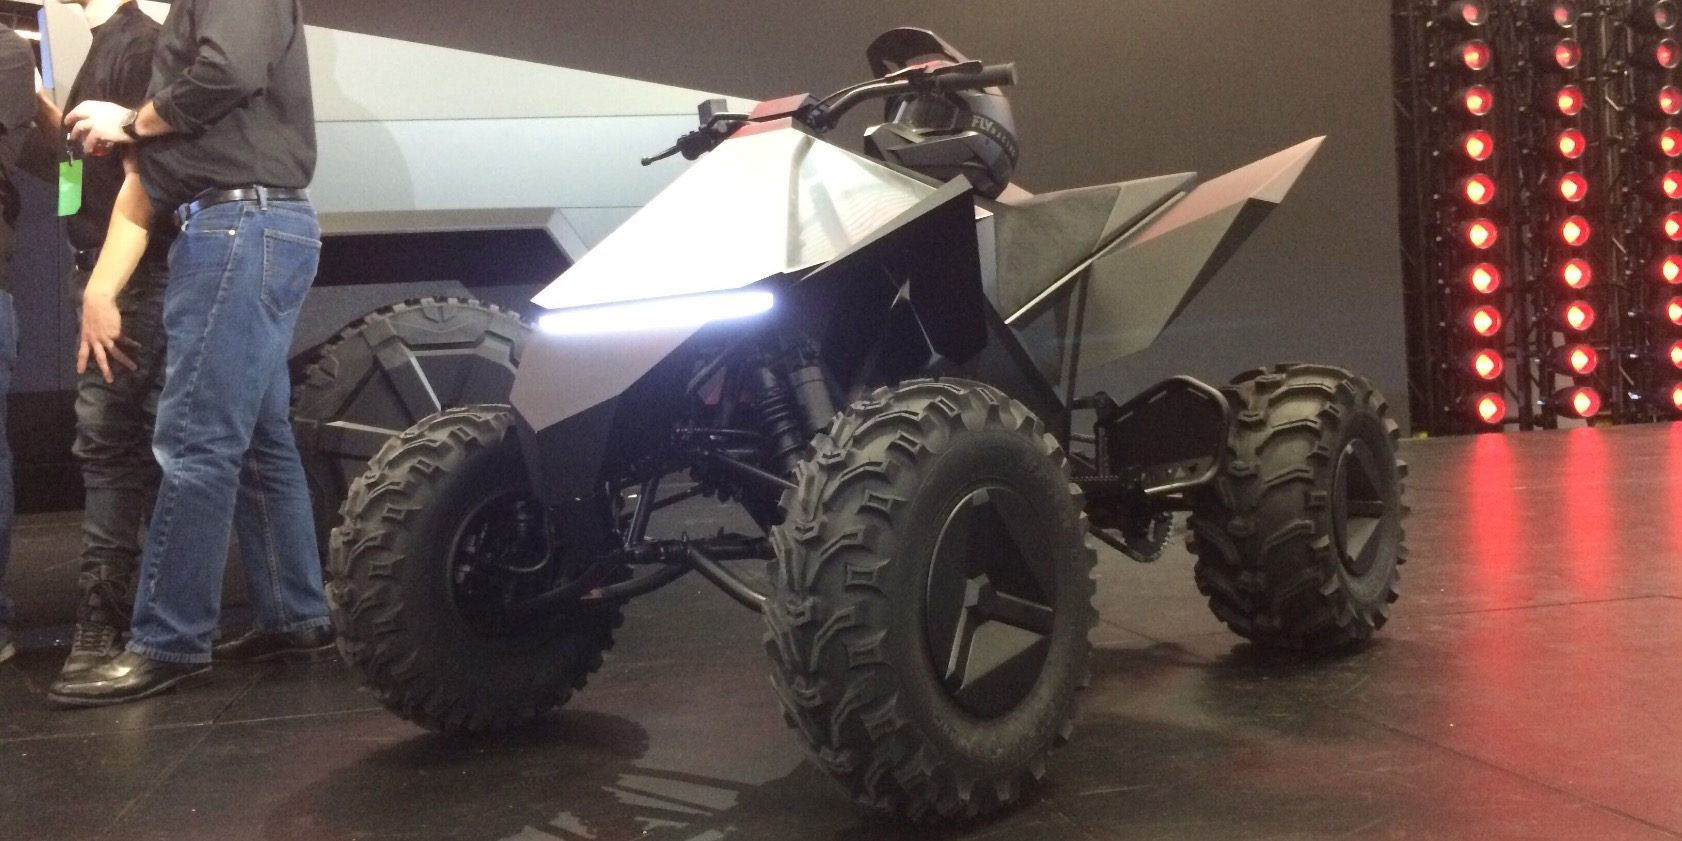 Tesla To Launch Cyberquad Electric Atv In Late 2021 Hints At Possible Dirt Bike Electrek